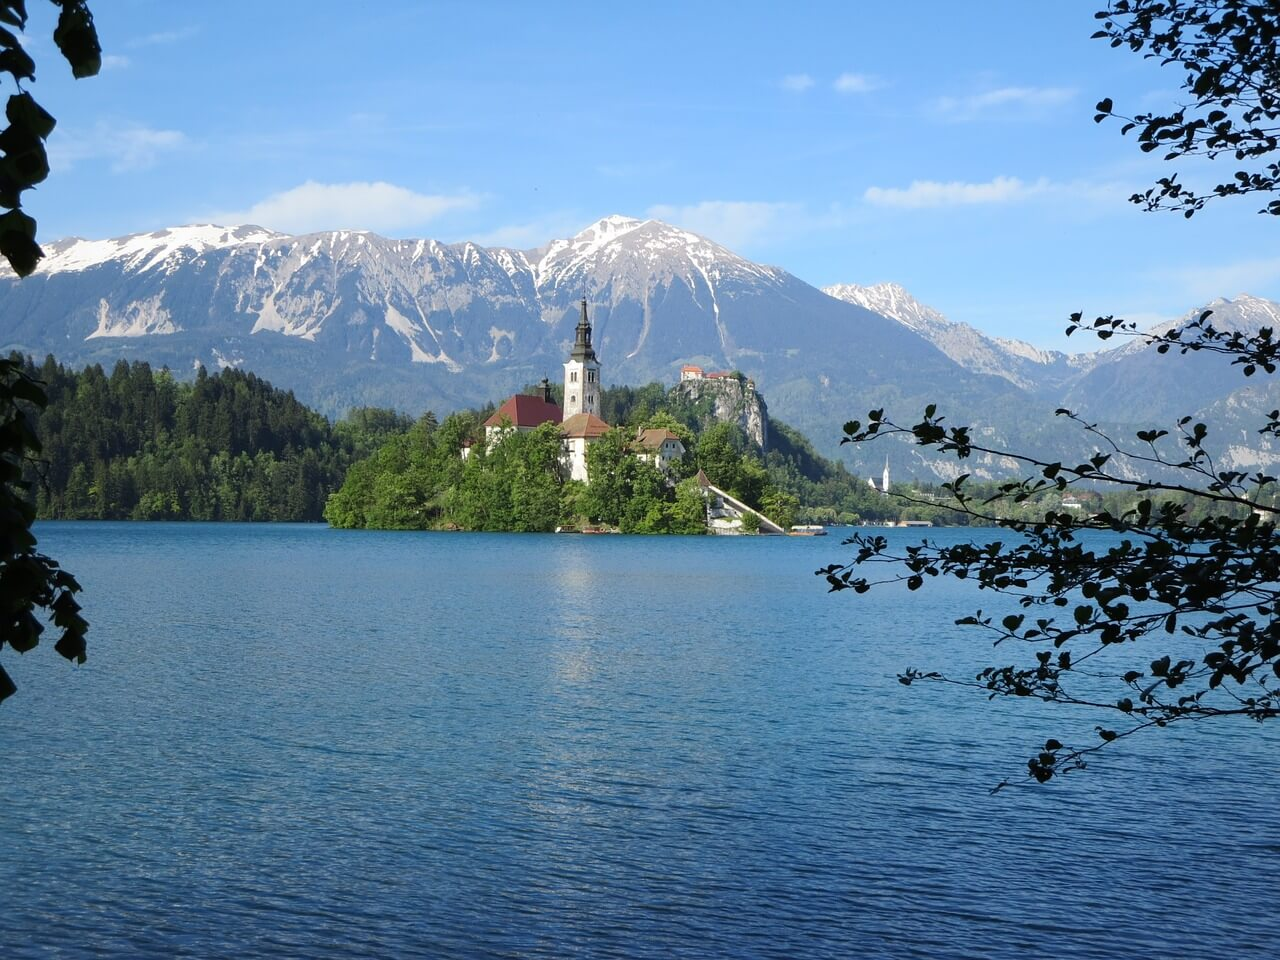 A photo of Lake Bled with a town in the distance and few mountains surrounding it